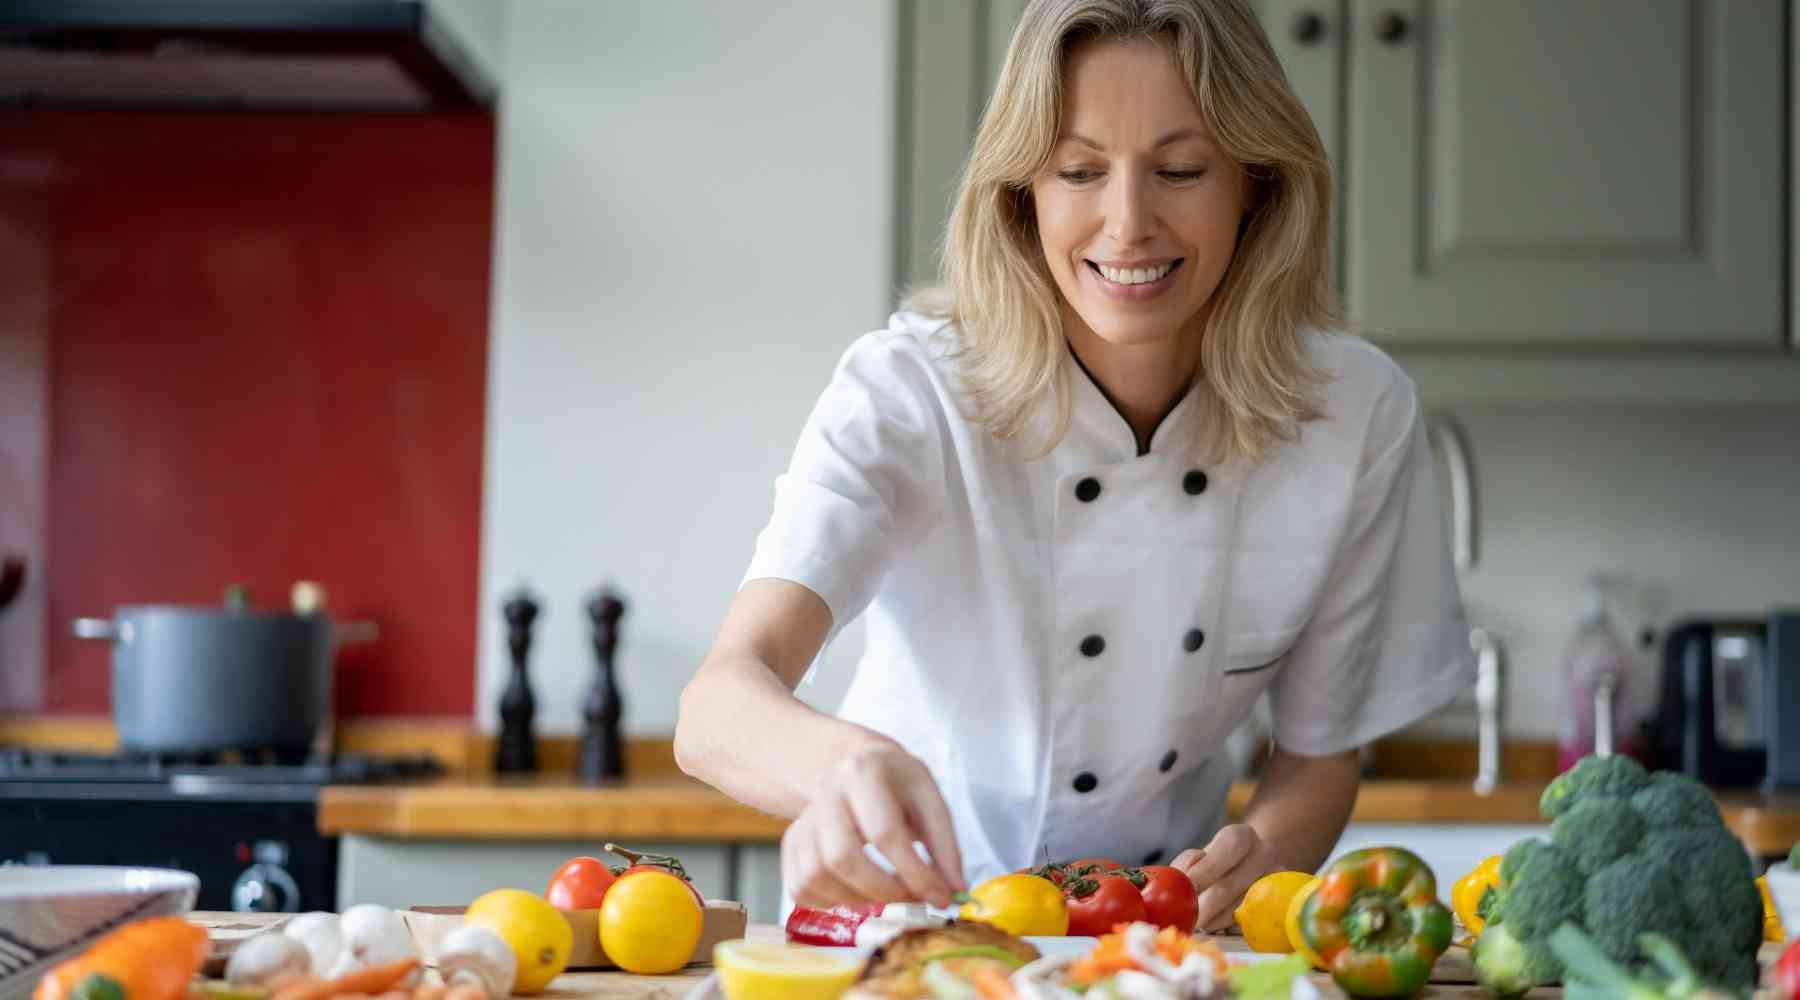 How to Make Money Without a Job - Personal Chef